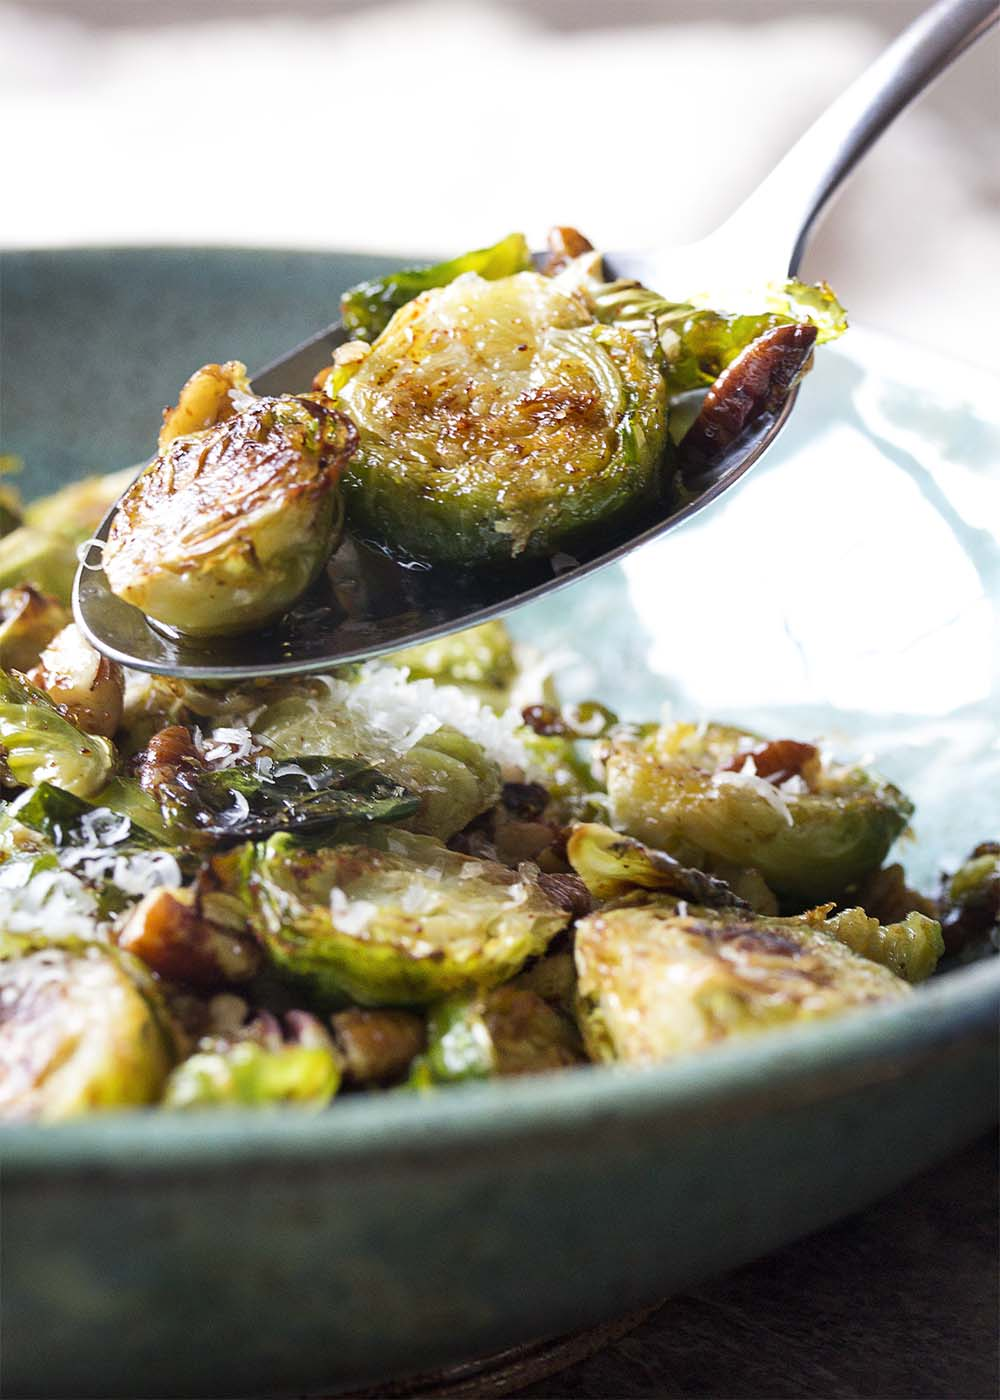 A spoonful of browned roasted brussels sprouts and toasted pecans along with balsamic and shredded parmesan.